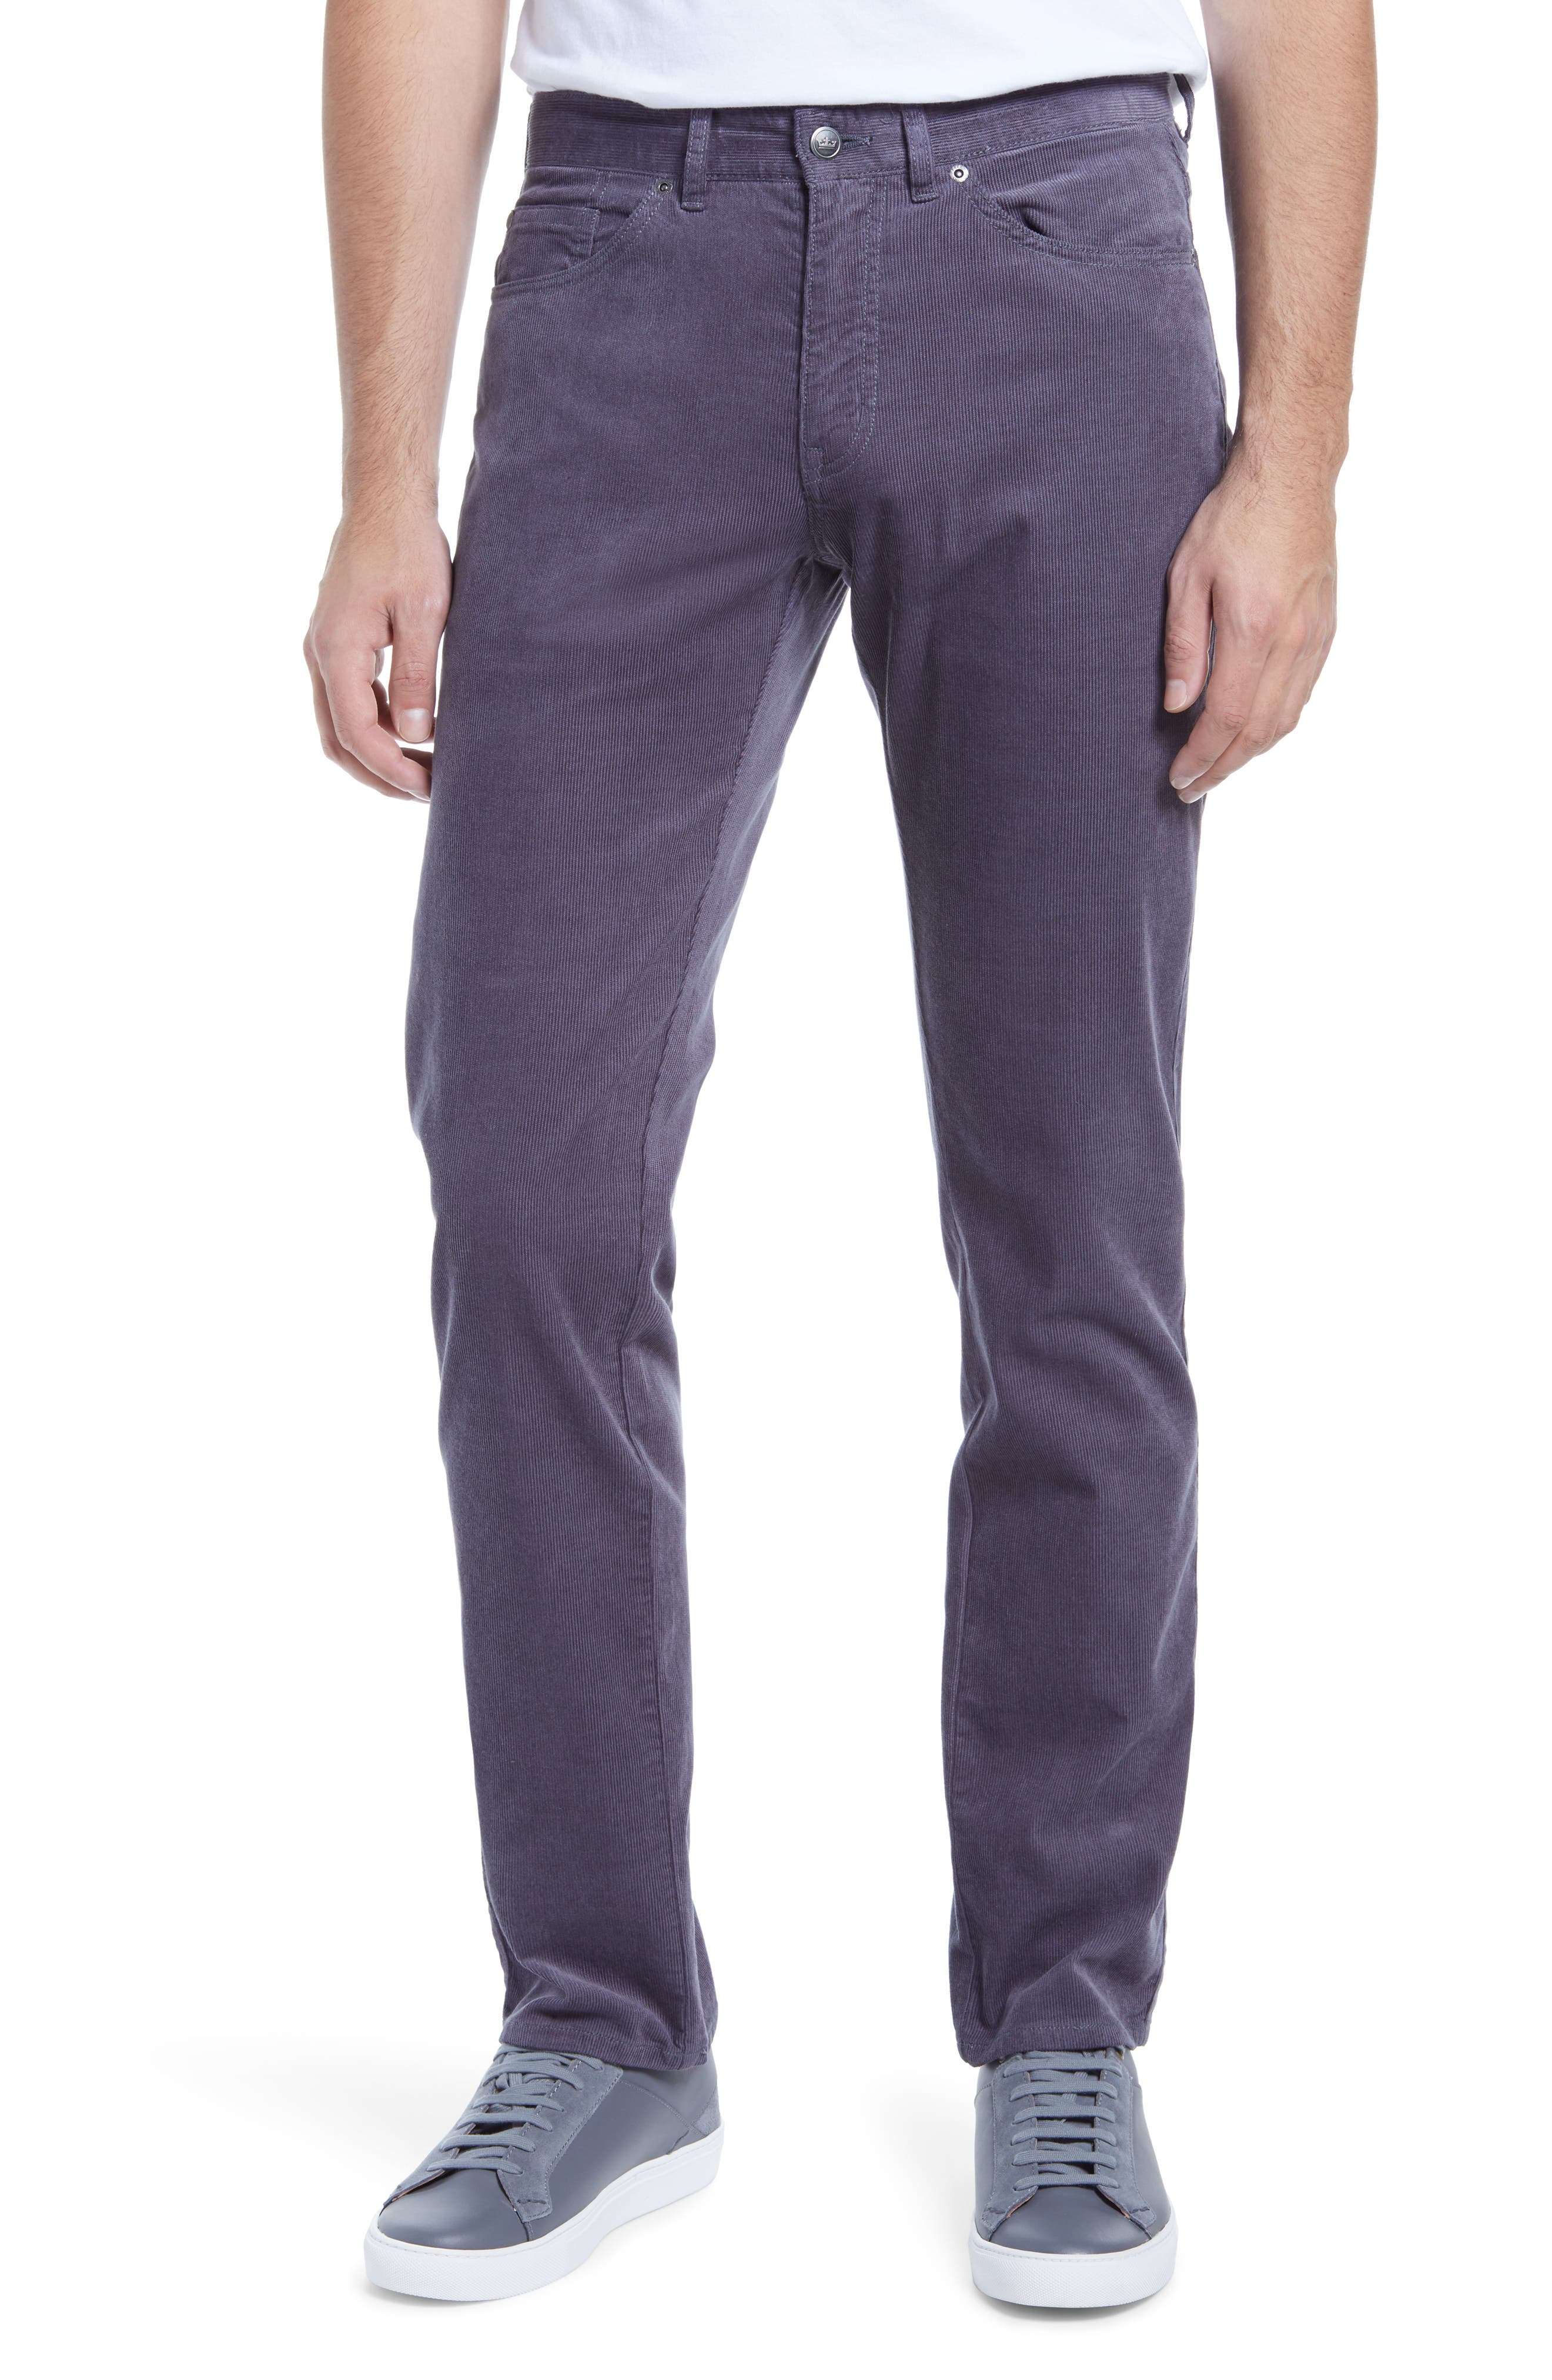 A five-pocket cut lends a casual feel to versatile pants cut from stretchy cotton/modal corduroy for flexible comfort. Style Name: Peter Millar Stretch Cotton Blend Corduroy Pants. Style Number: 6113630. Available in stores.